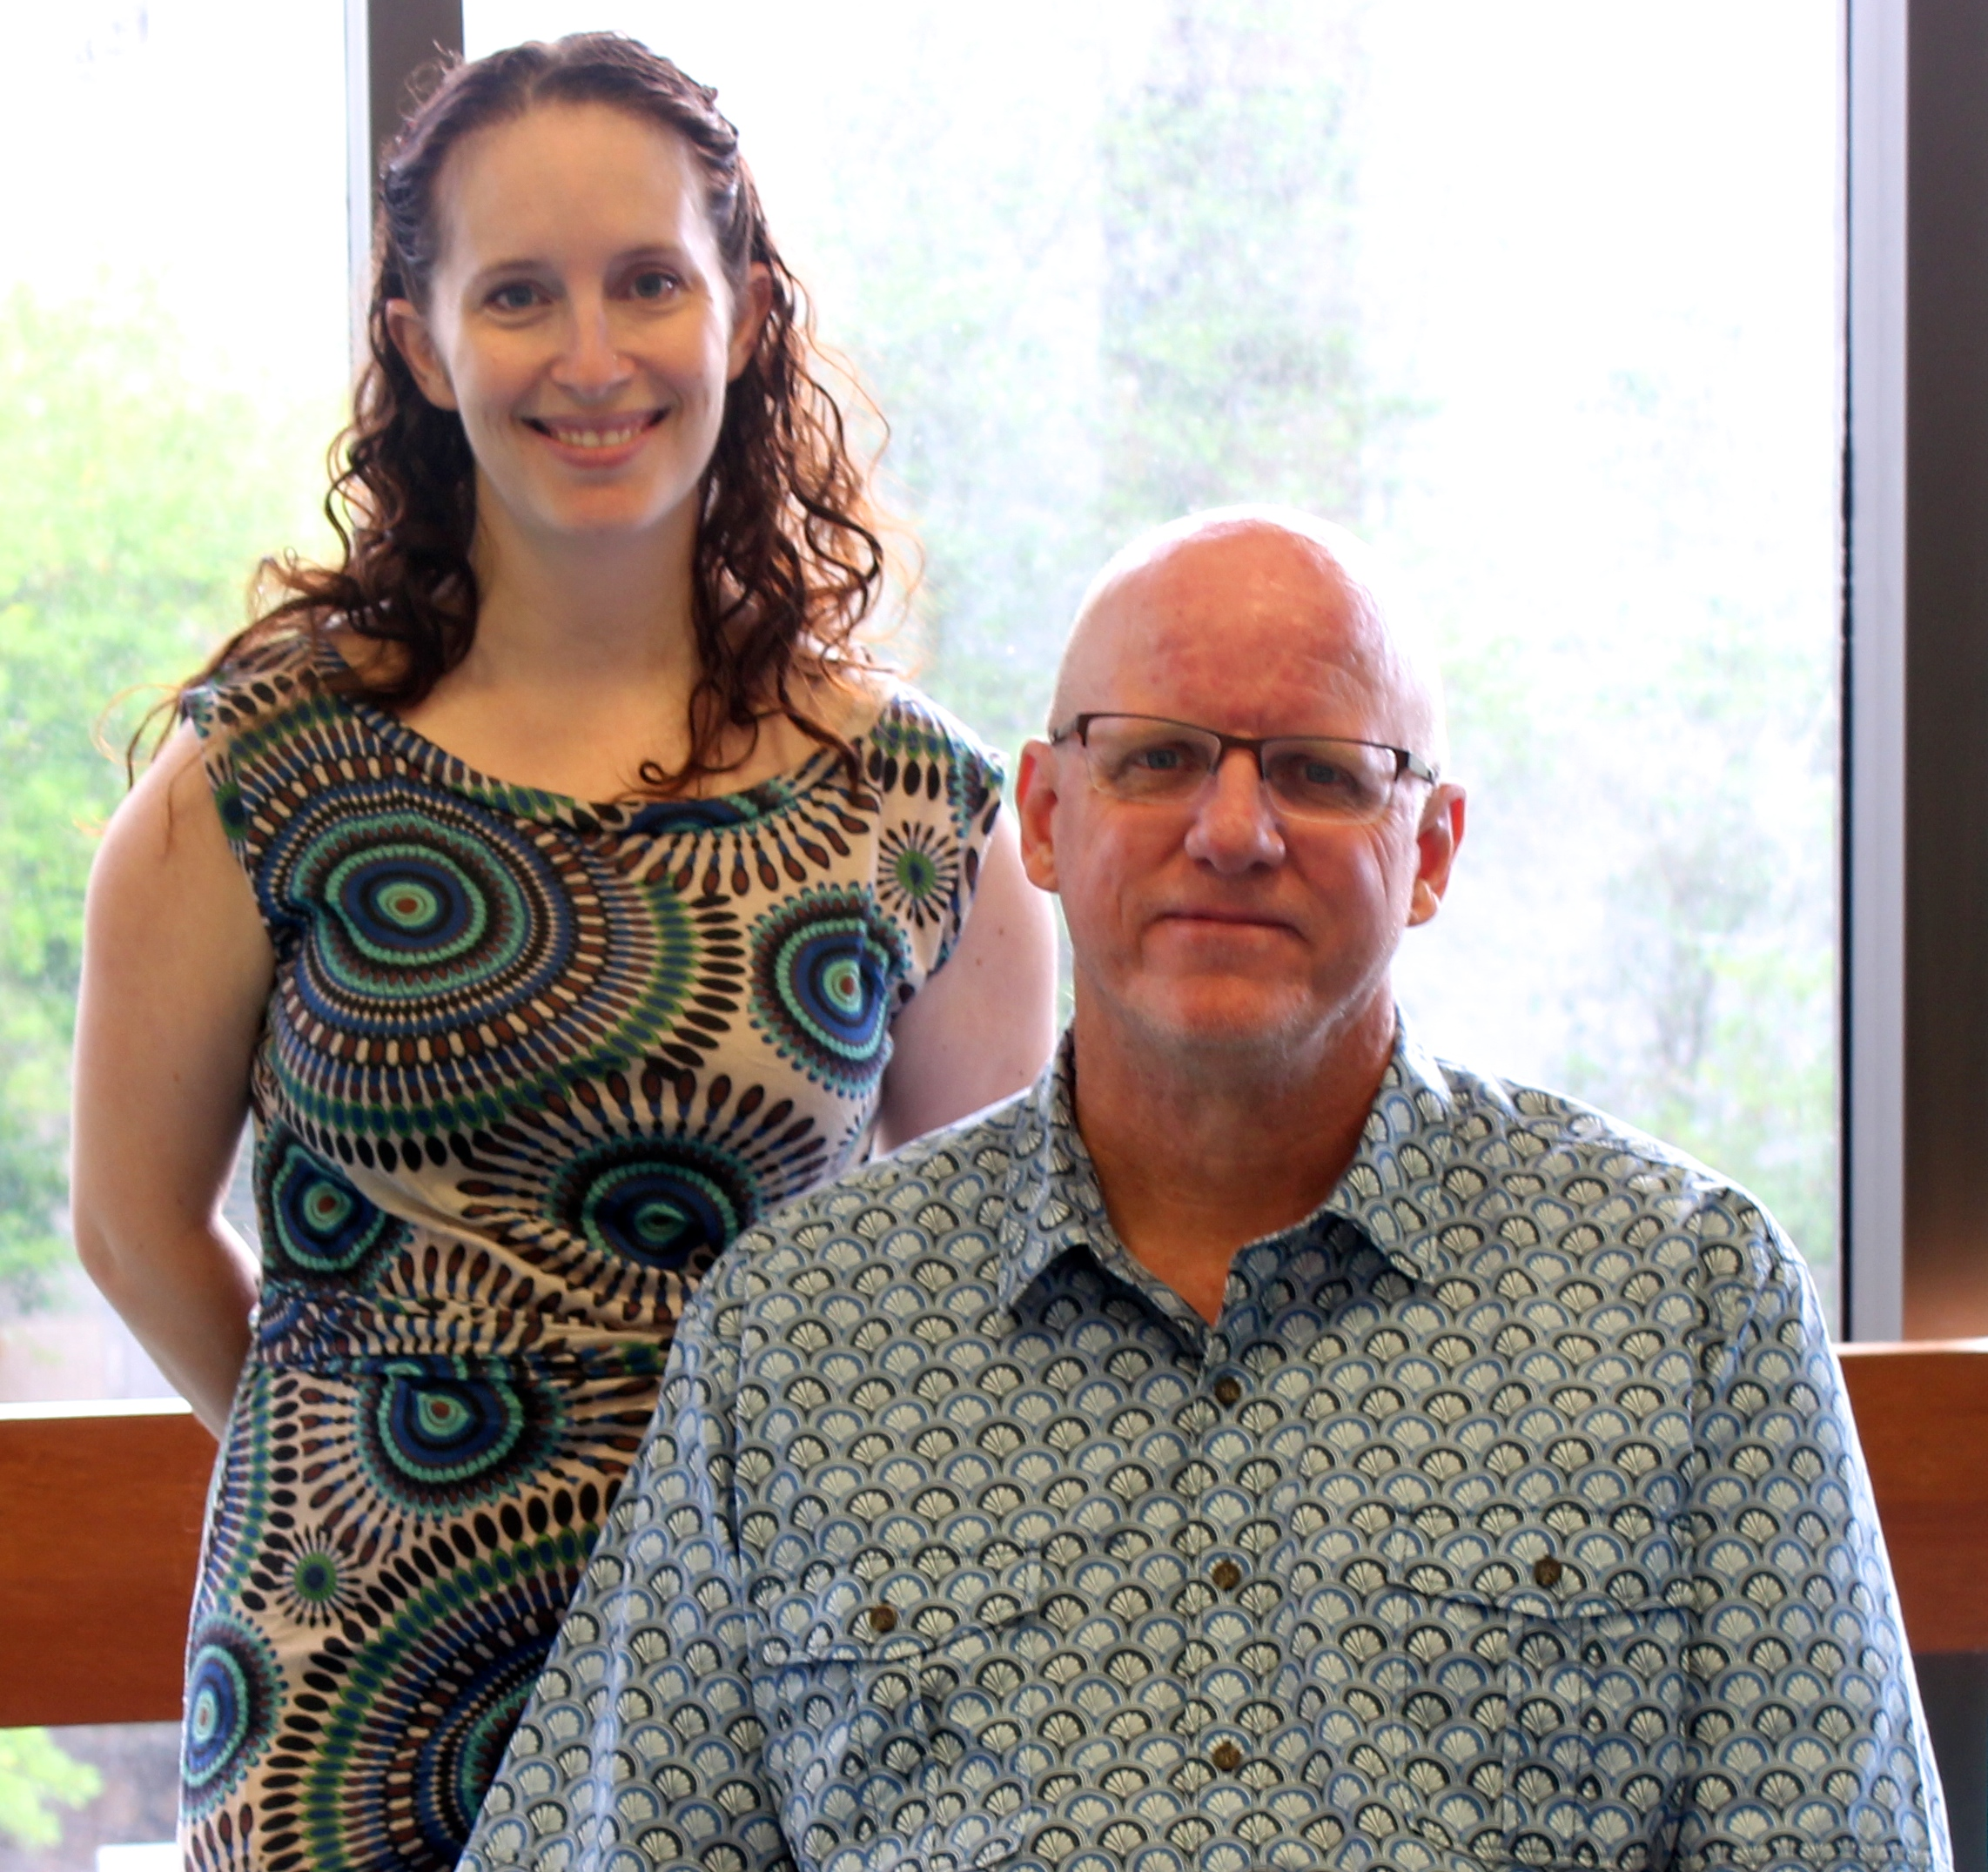 Image of Pacific Collection Librarians from left to right: Eleanor Kleiber and Stu Dawrs